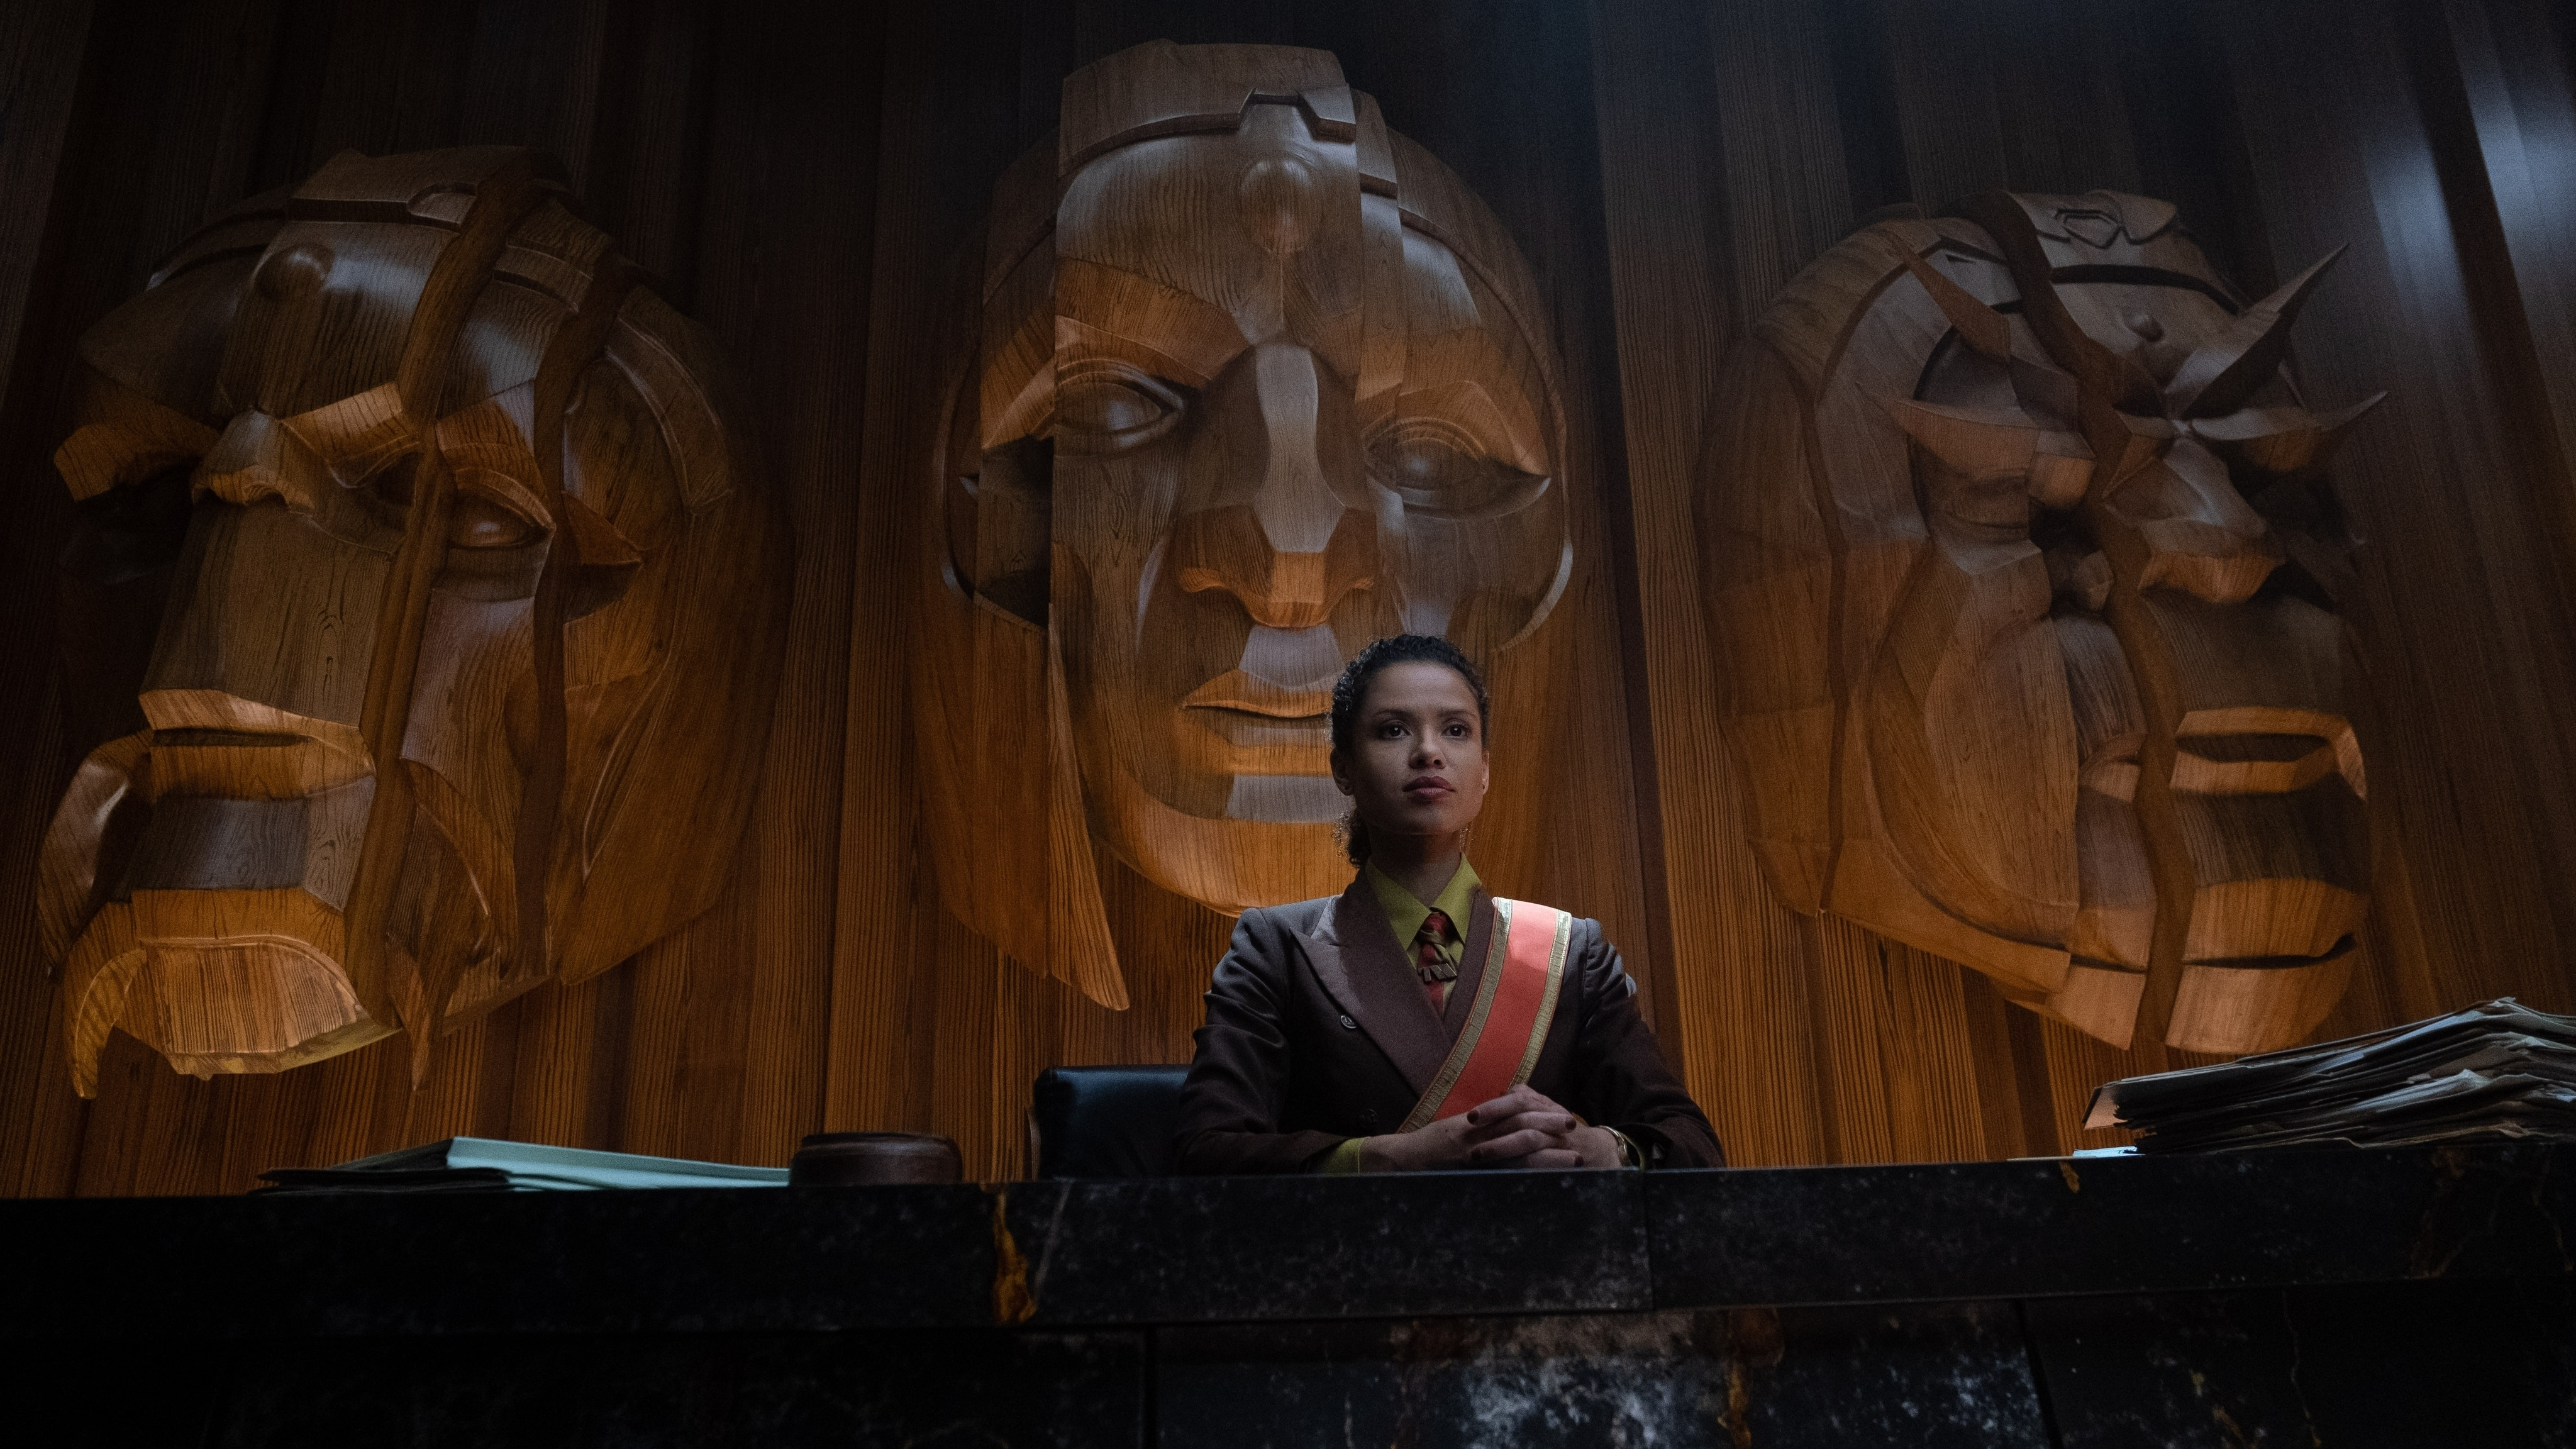 Judge Renslayer (Gugu Mbatha-Raw) in Marvel Studios' LOKI, exclusively on Disney+. Photo by Chuck Zlotnick. ©Marvel Studios 2021. All Rights Reserved.